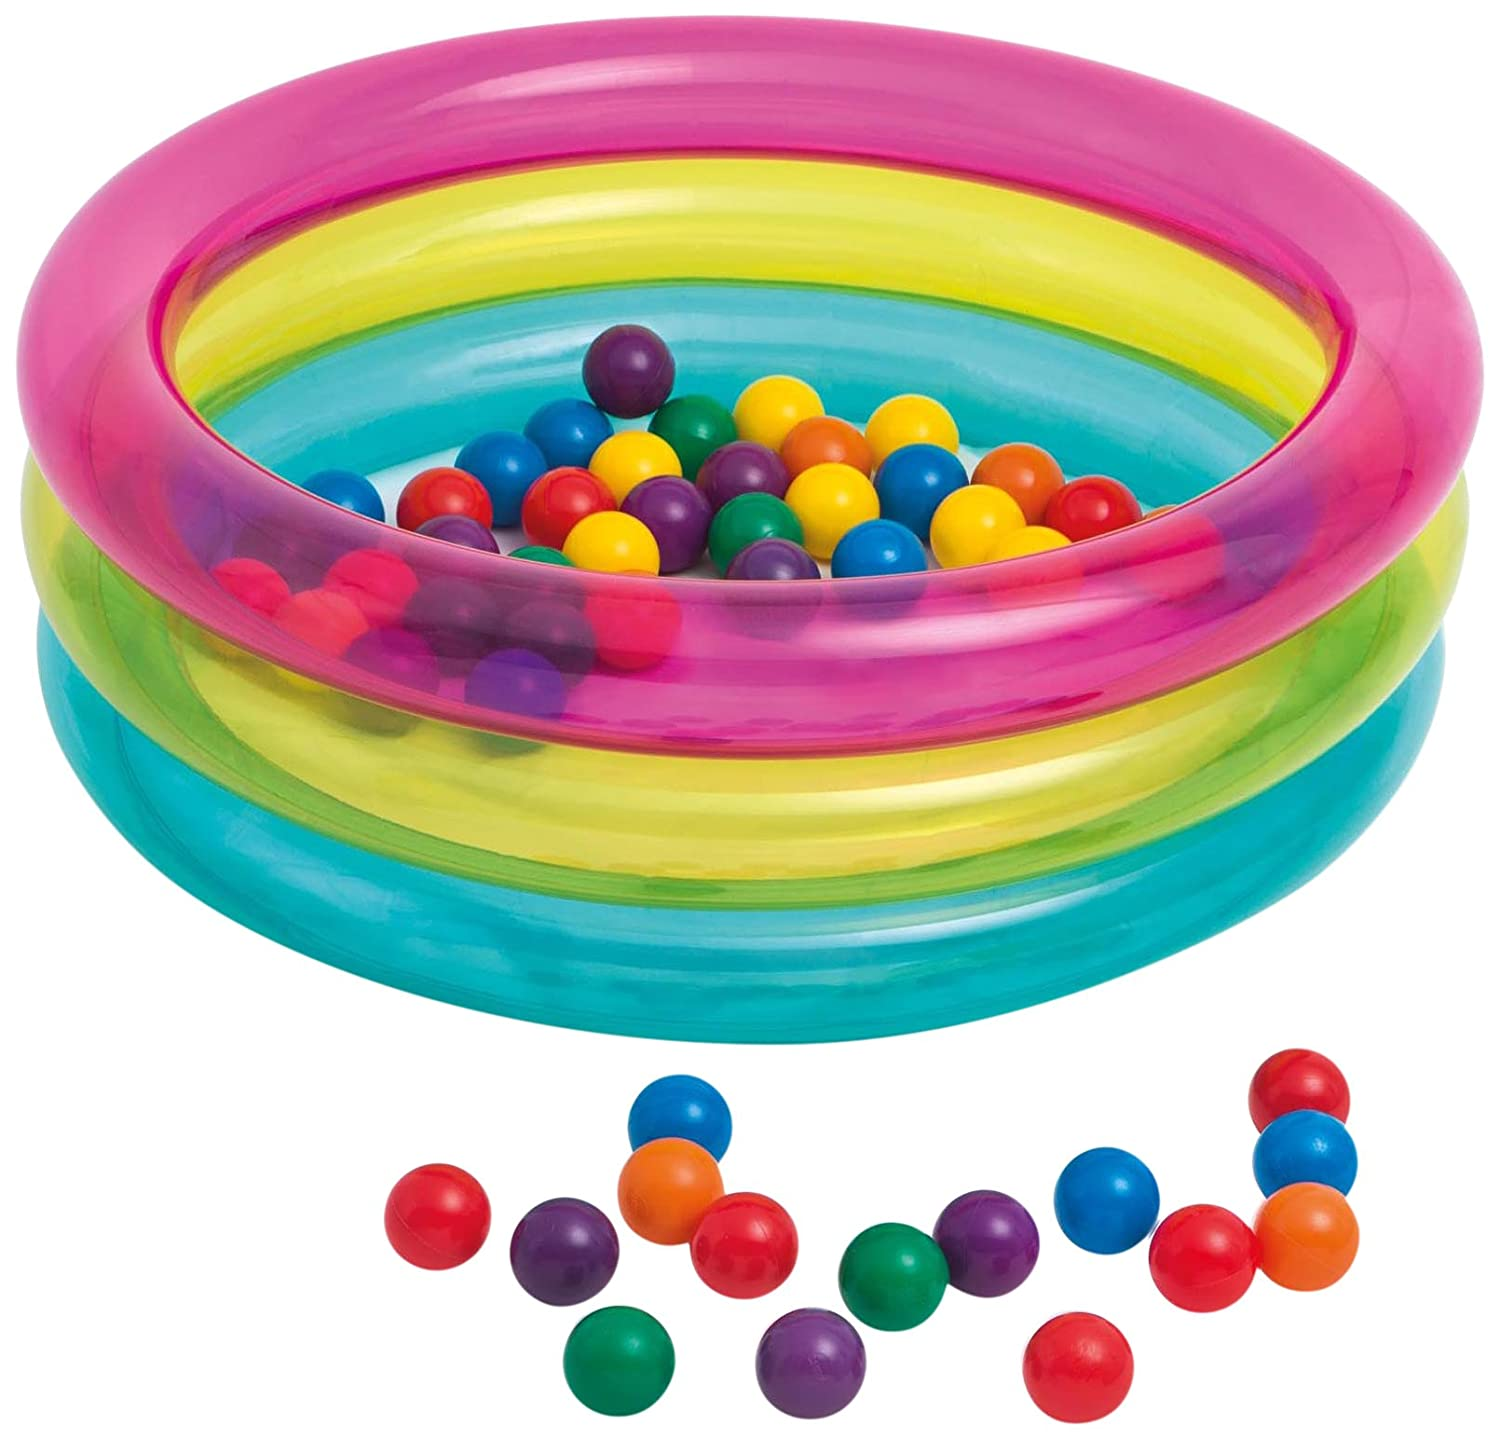 Intex 48674 - Piscina Baby 3 Anelli Palline Colorate, 86 x 25 cm Intex Amazon IT 48674NP